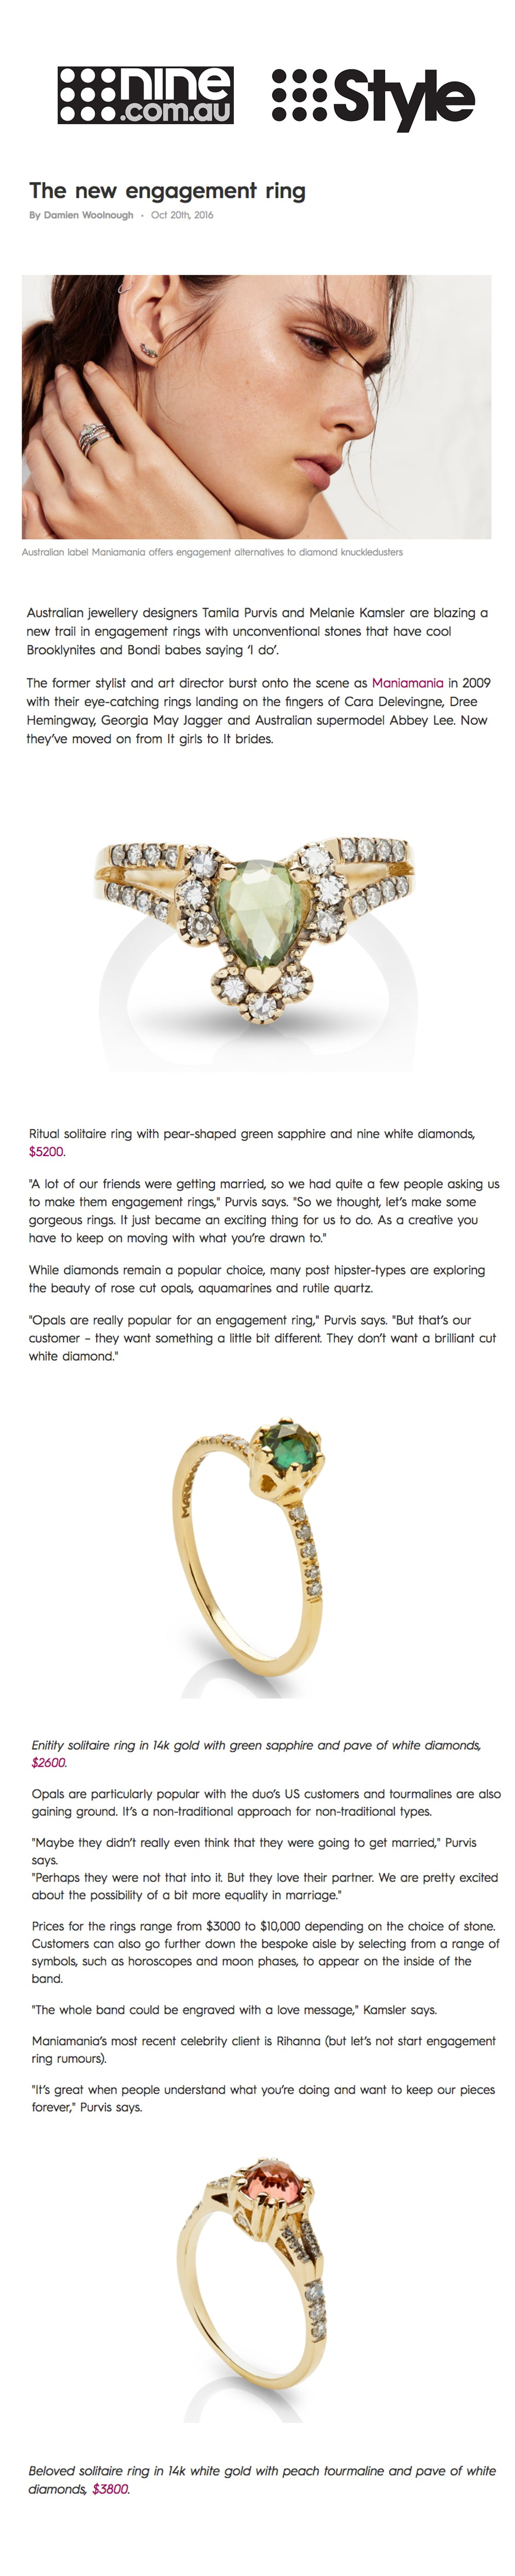 IMAGE ALT TEXT - maniamania unconventional engagement rings with alternatives to diamonds